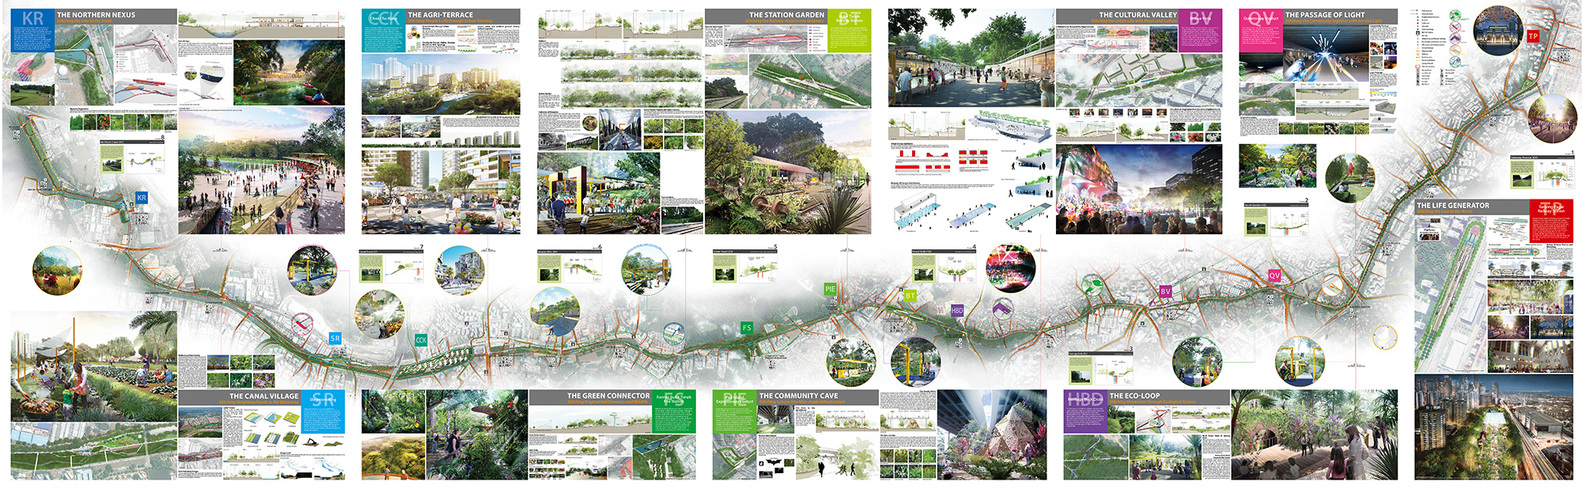 Nikken Sekkei Masterplan Singapore rail coridor proposal